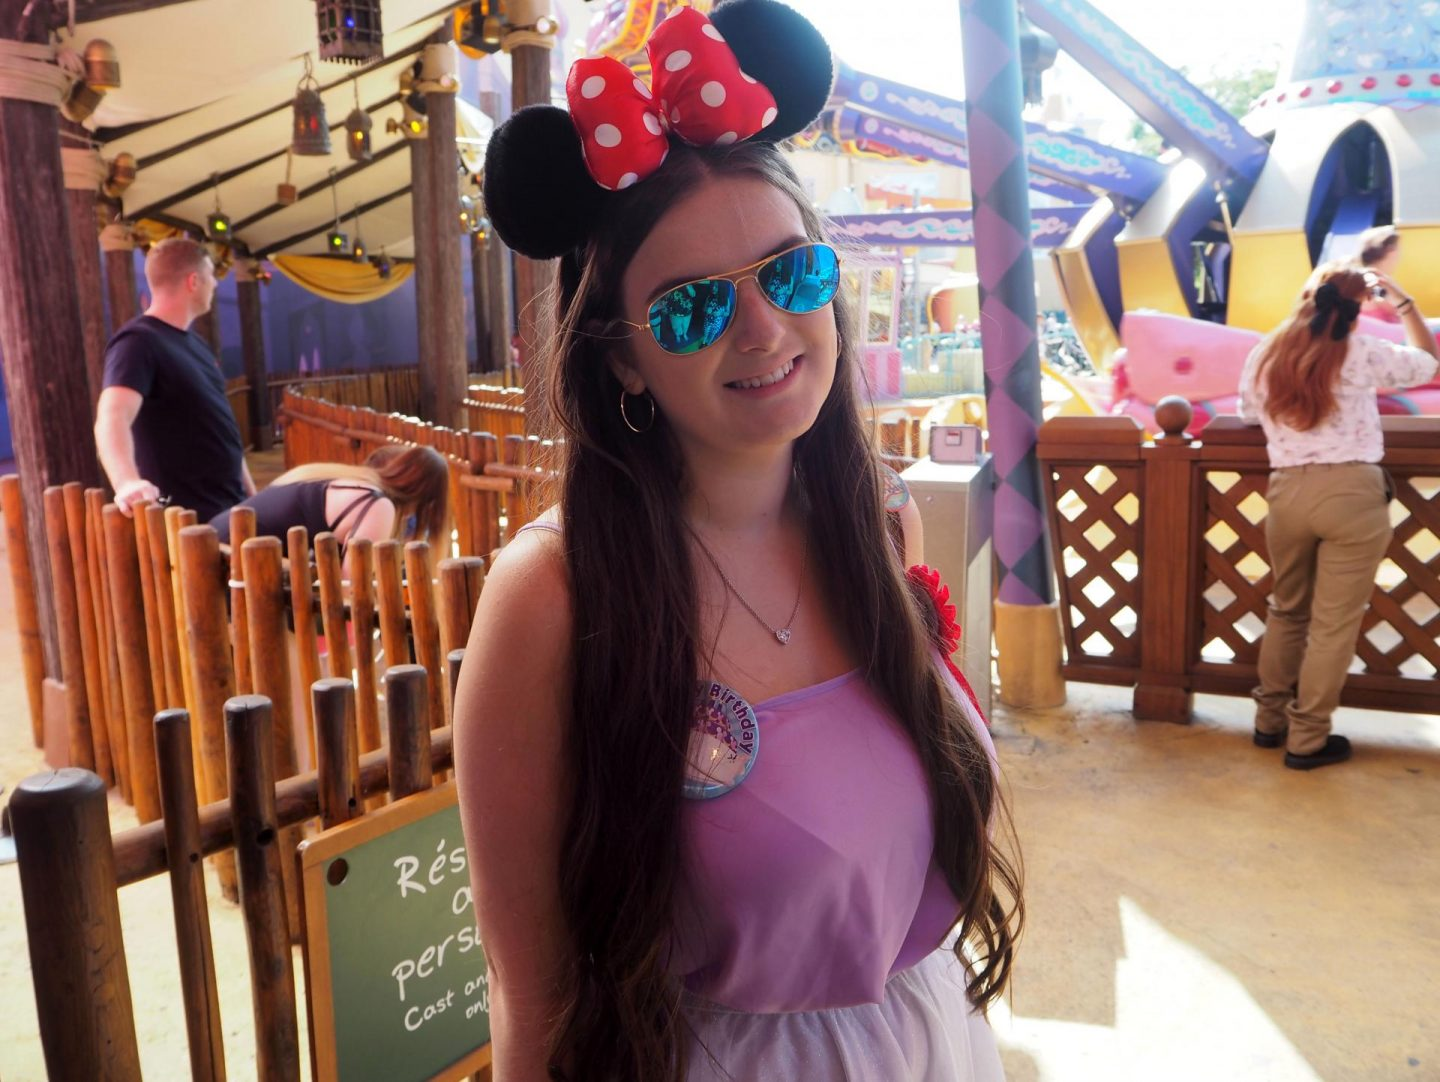 disneyland-paris-my-22nd-birthday-trip-rachel-nicole-uk-travel-disney-blogger-29